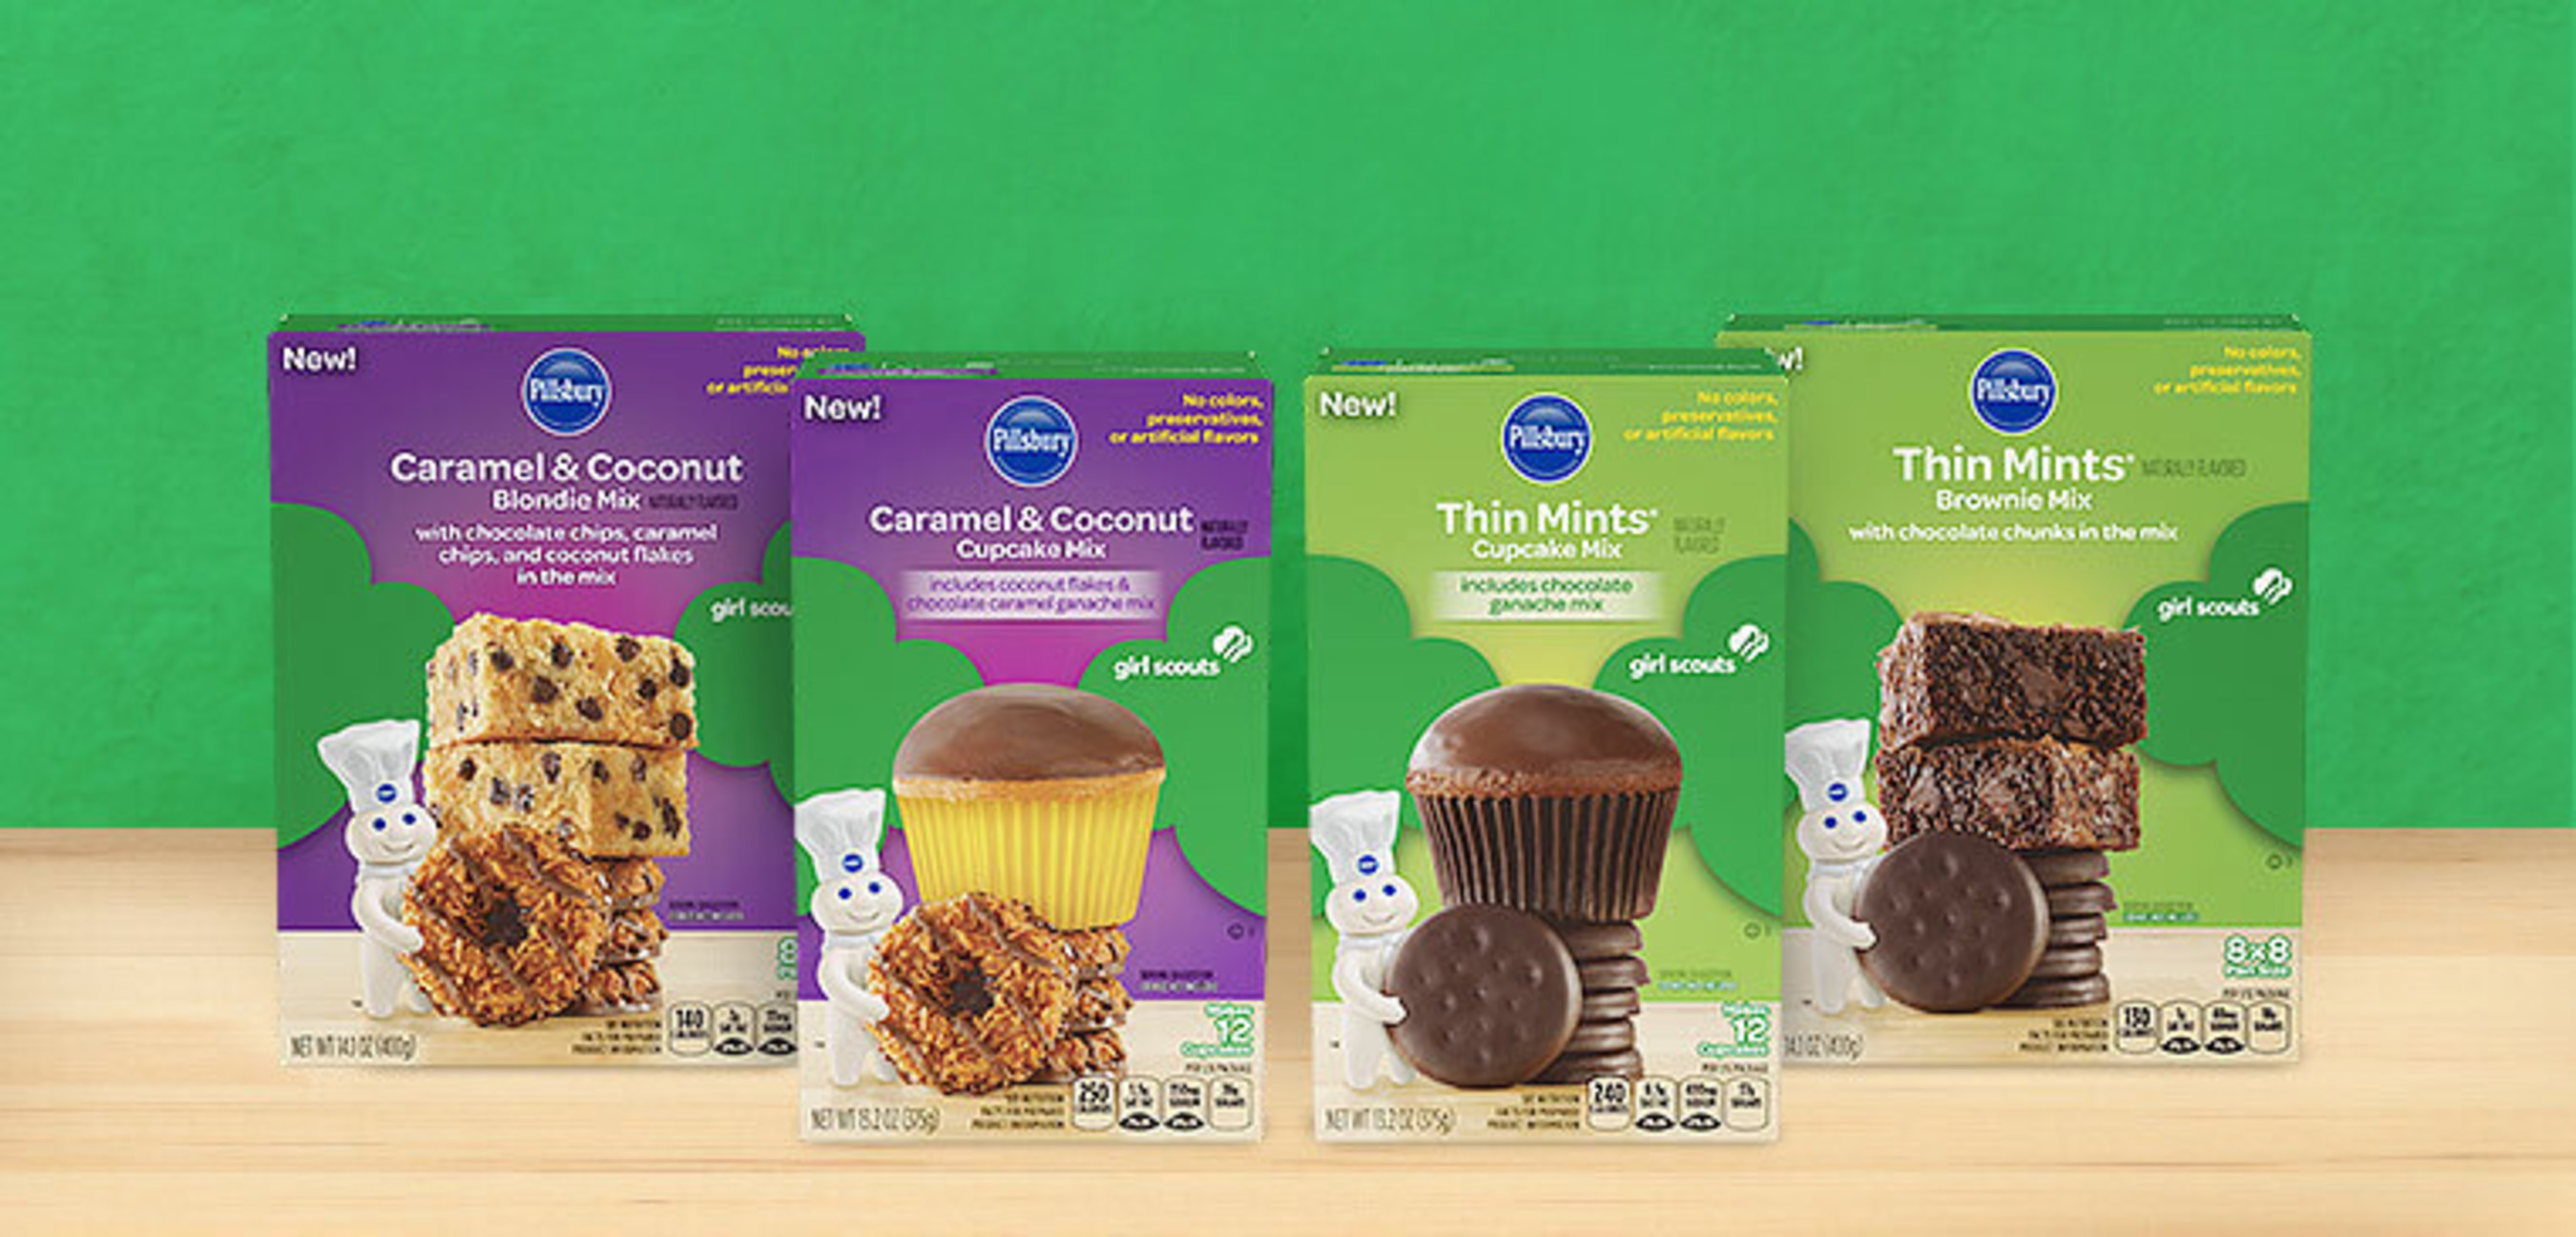 NEW Pillsbury(TM) Girl Scouts(R) Thin Mints(R) and Caramel & Coconut Flavored Baking Mixes